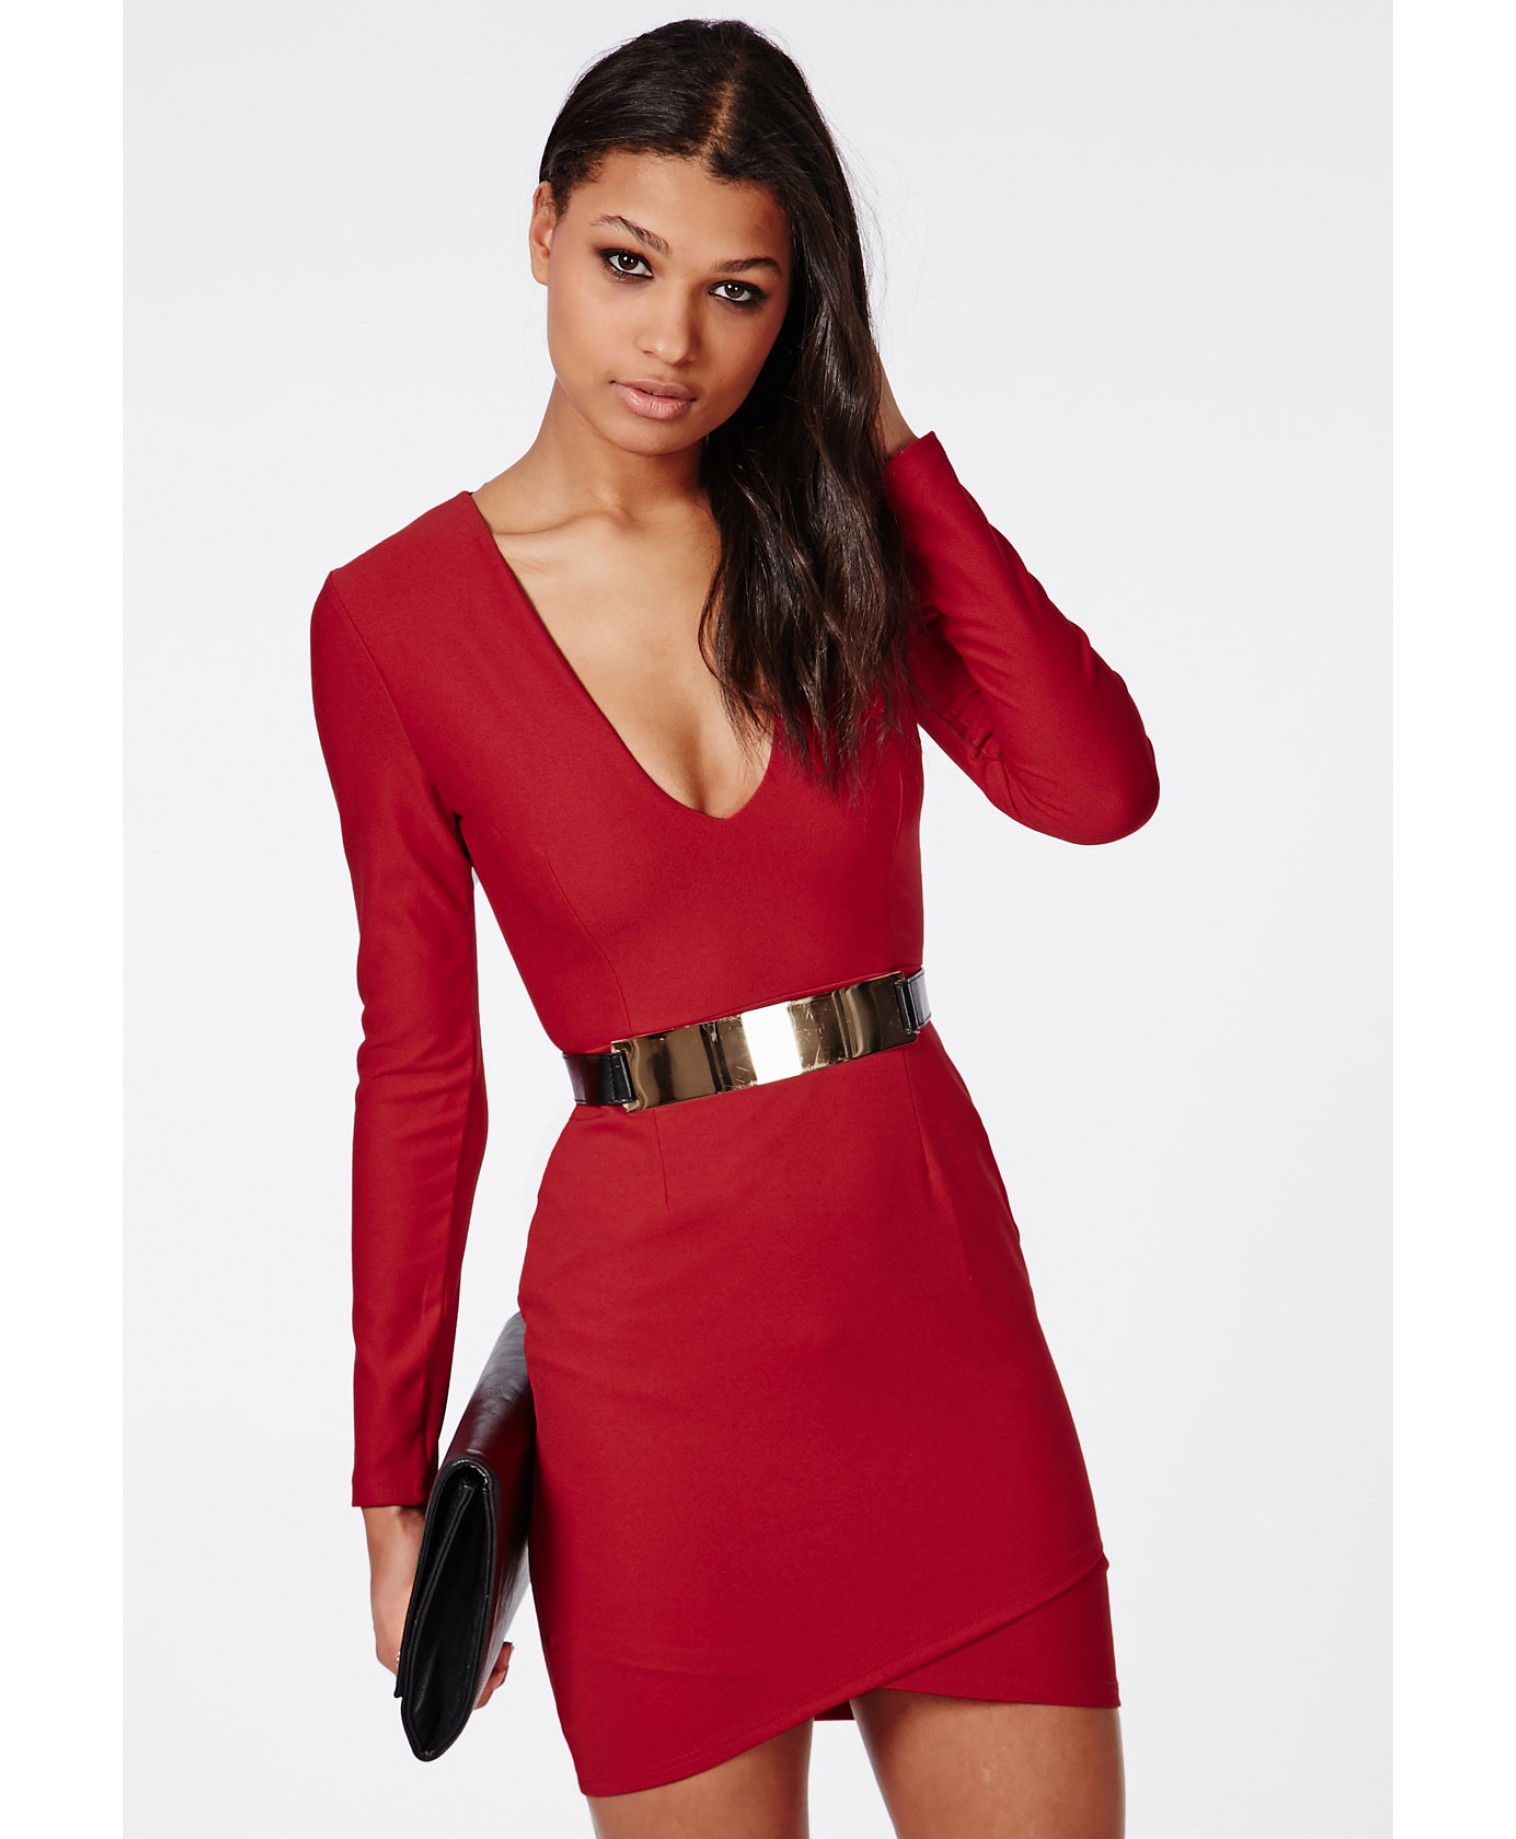 Lyst - Missguided Long Sleeve Plunge Wrap Dress Red in Red 760a54cdb462